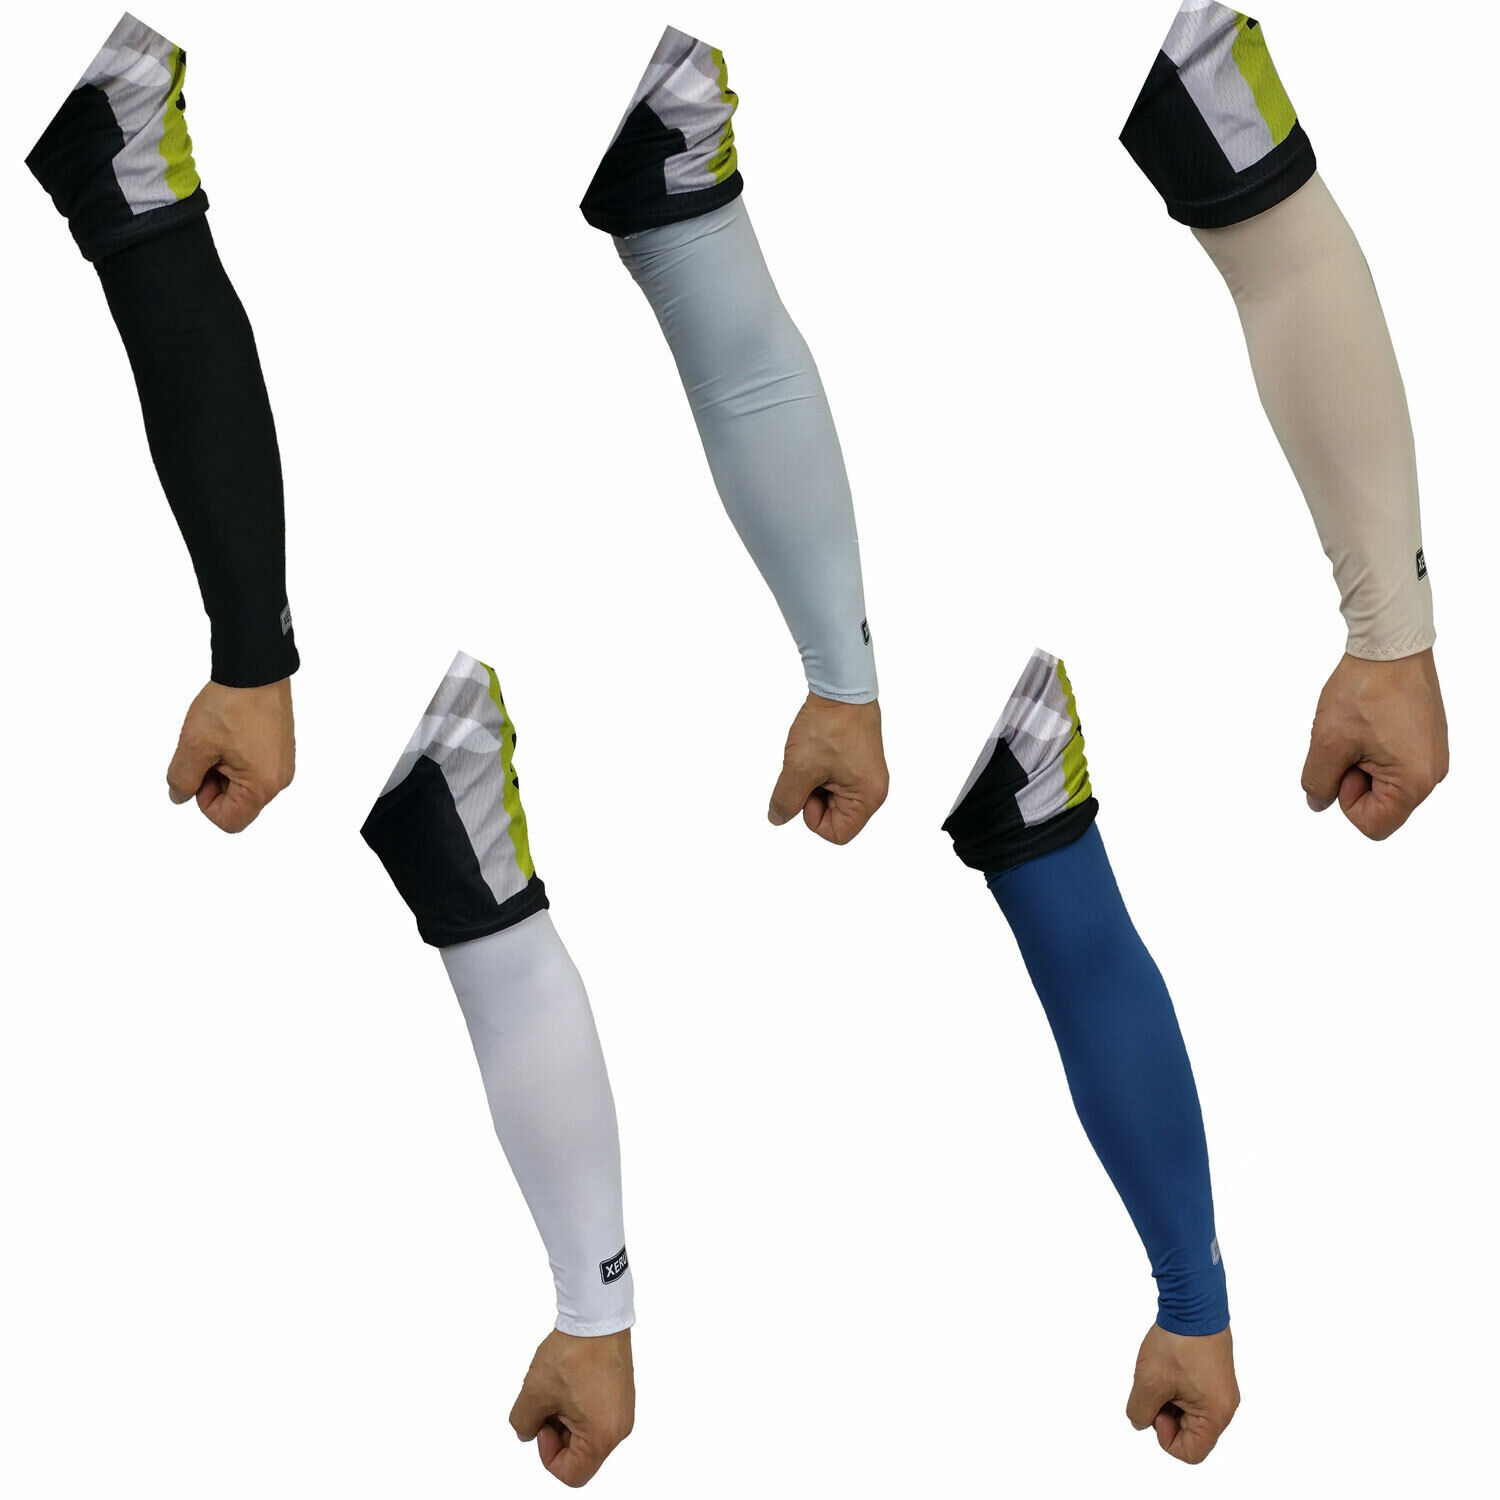 XERU Cooling Arm Sleeves Cover UV Sun Protection Outdoor Sports For Men Women